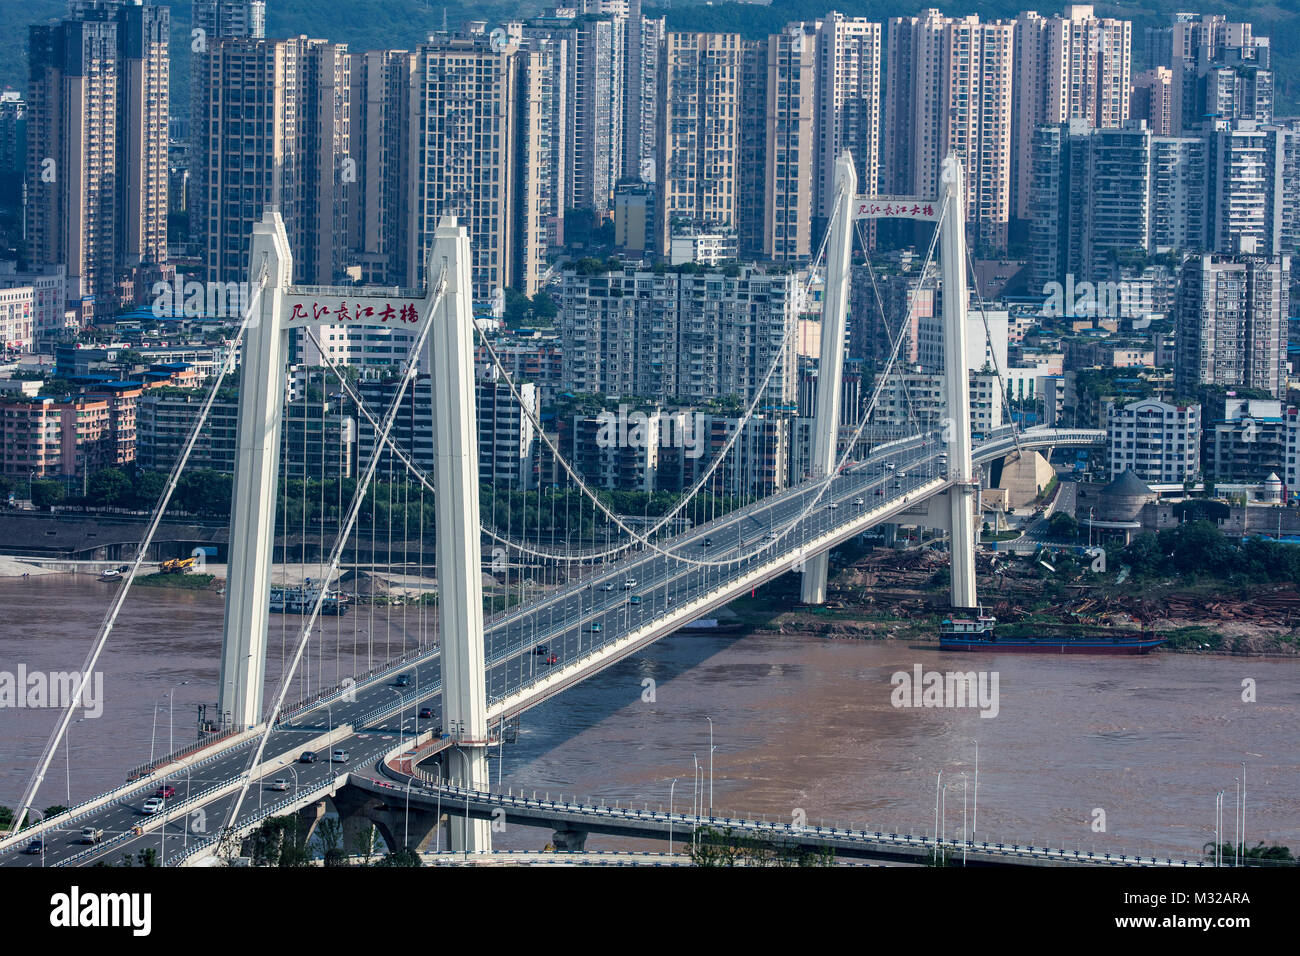 The scenery of urban architecture in Chongqing - Stock Image